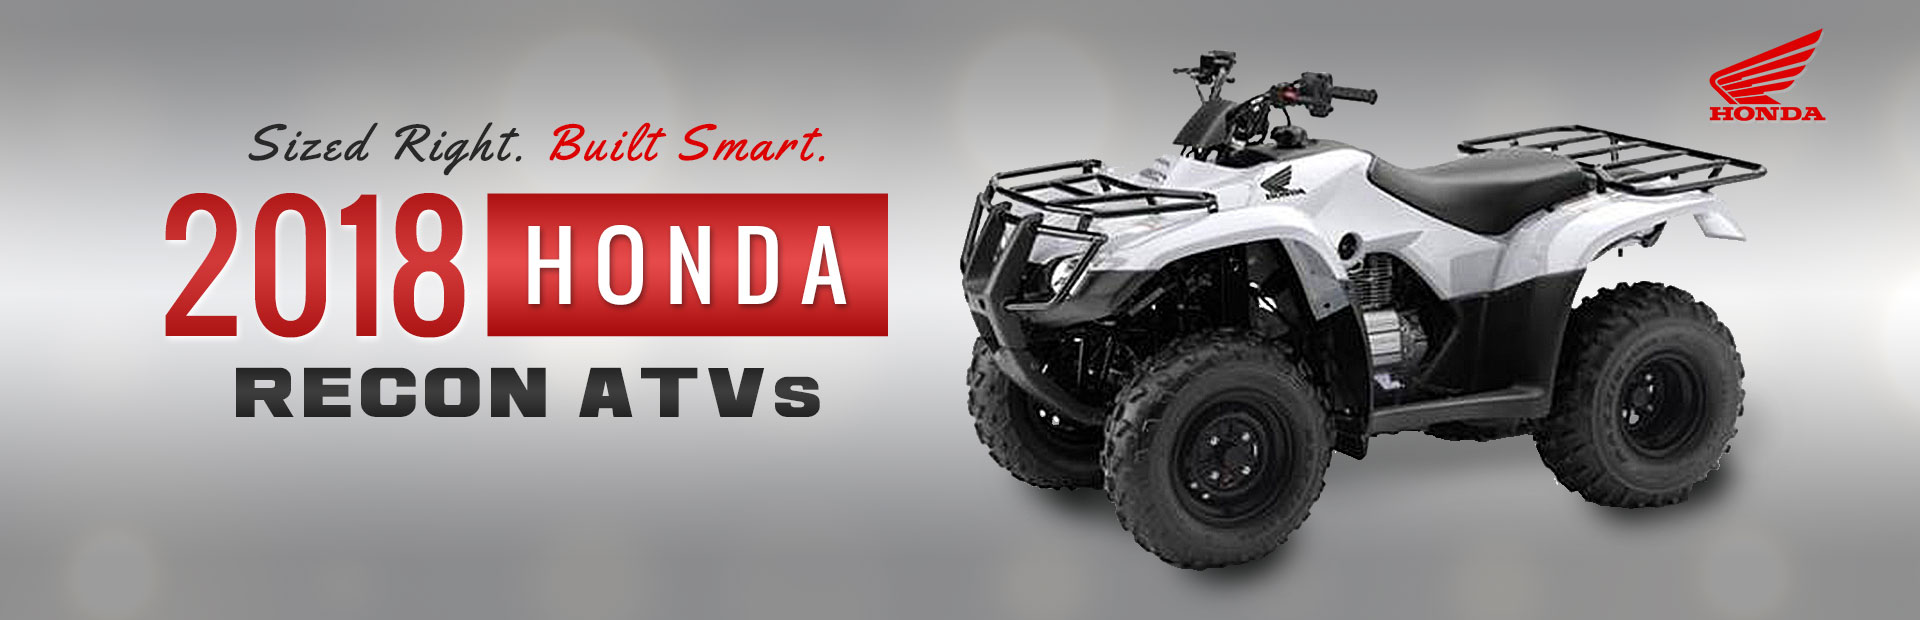 Ephrata Cycle And Sports Honda Motorcycles Atvs Utvs Dirt